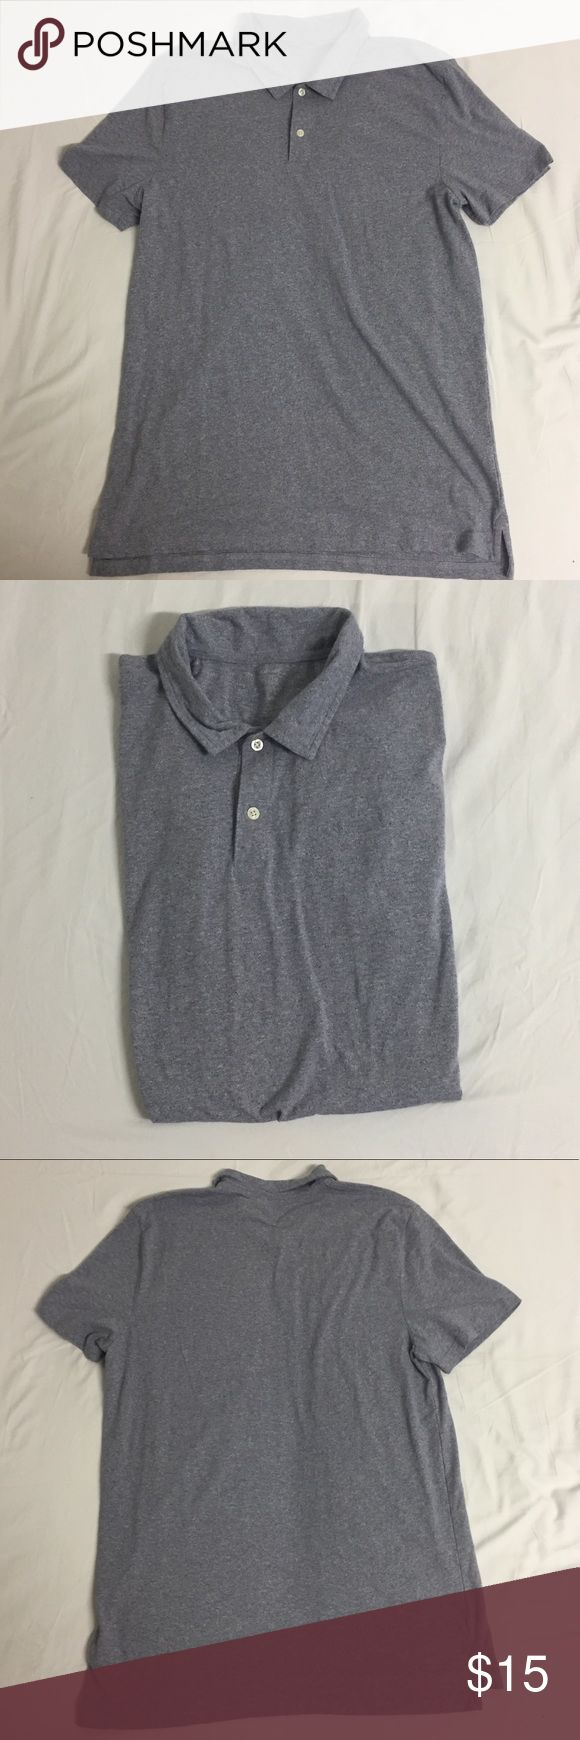 New Old Navy Blue Cotton Polo Shirt XLT NWOT New Old Navy blue extra large tall cotton polo shirt. New never worn without tags. Old Navy Shirts Polos